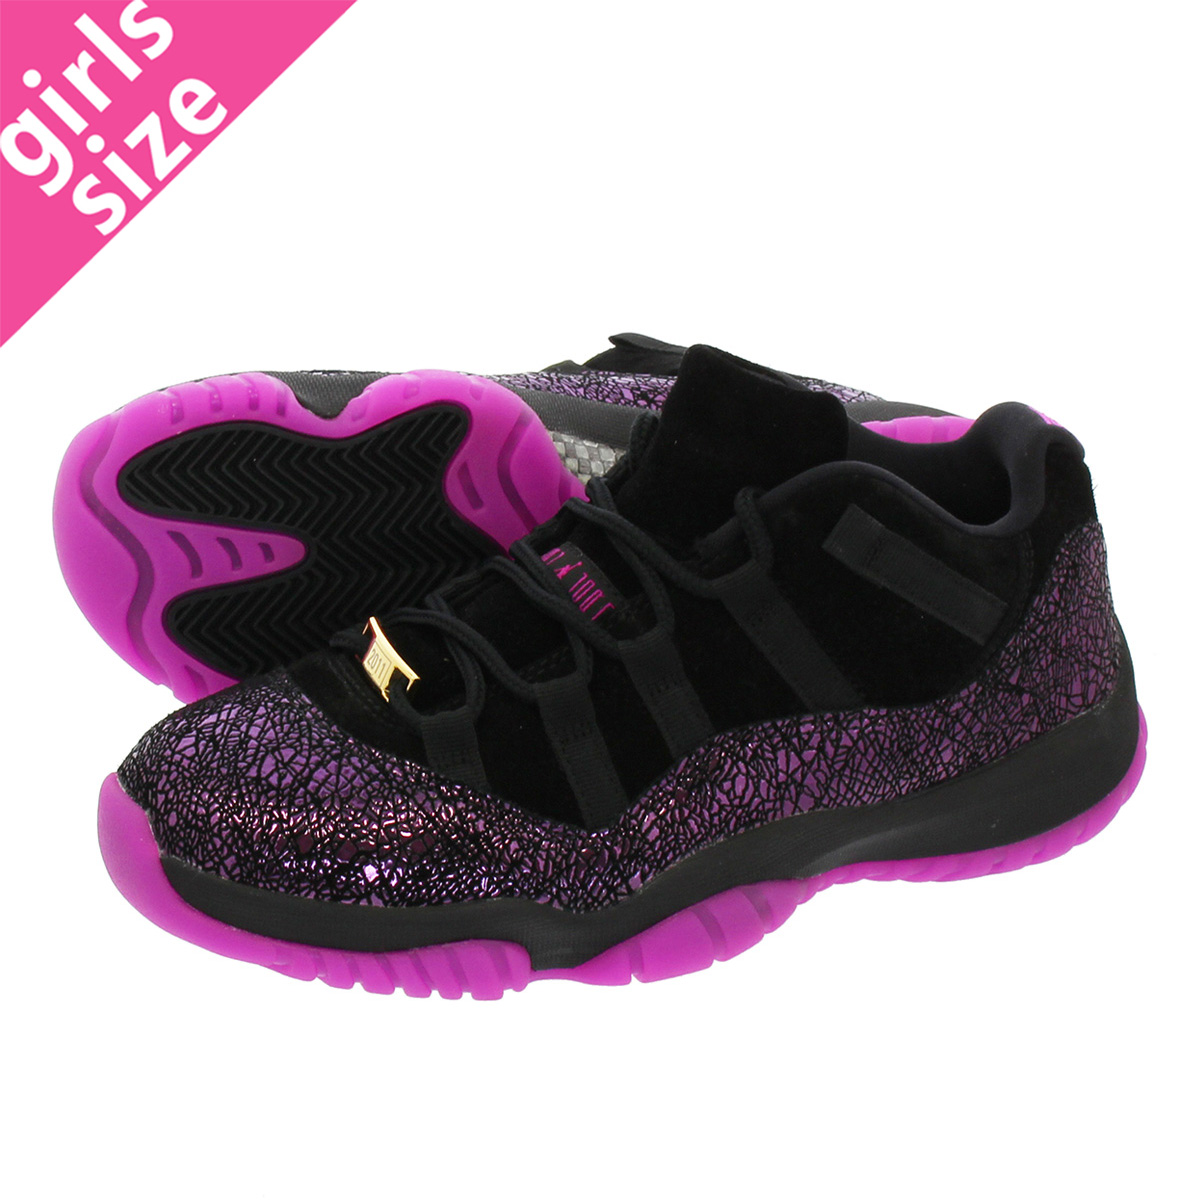 watch cd87c 6e32e NIKE WMNS AIR JORDAN 11 RETRO LOW Nike women Air Jordan 11 nostalgic low  BLACK/FUCHSIA BLAST ar5149-005